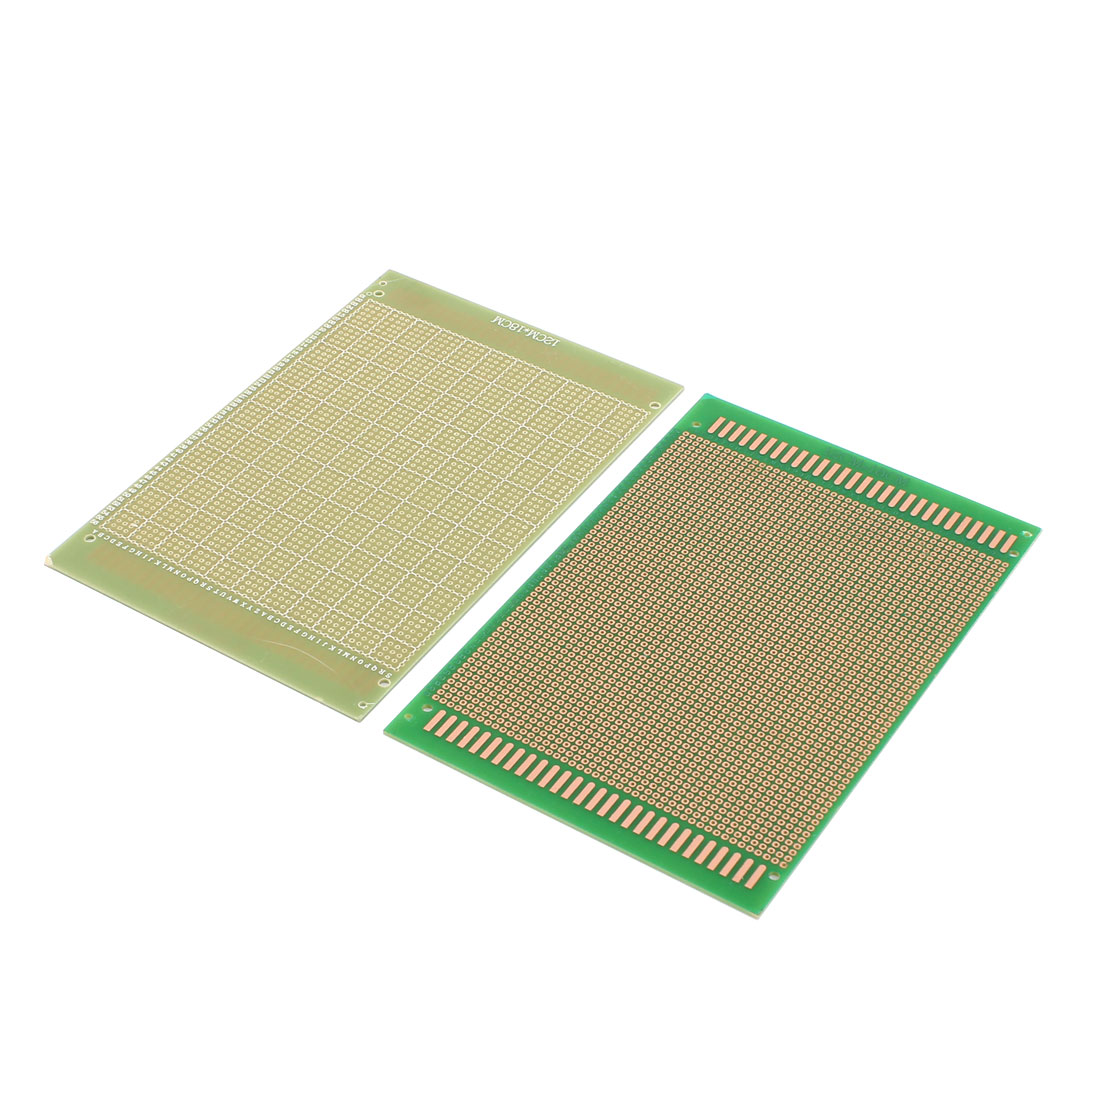 2pcs 18cm x 12cm Rectangle Single Sided Universal DIY Prototyping Paper PCB Print Circuit Board